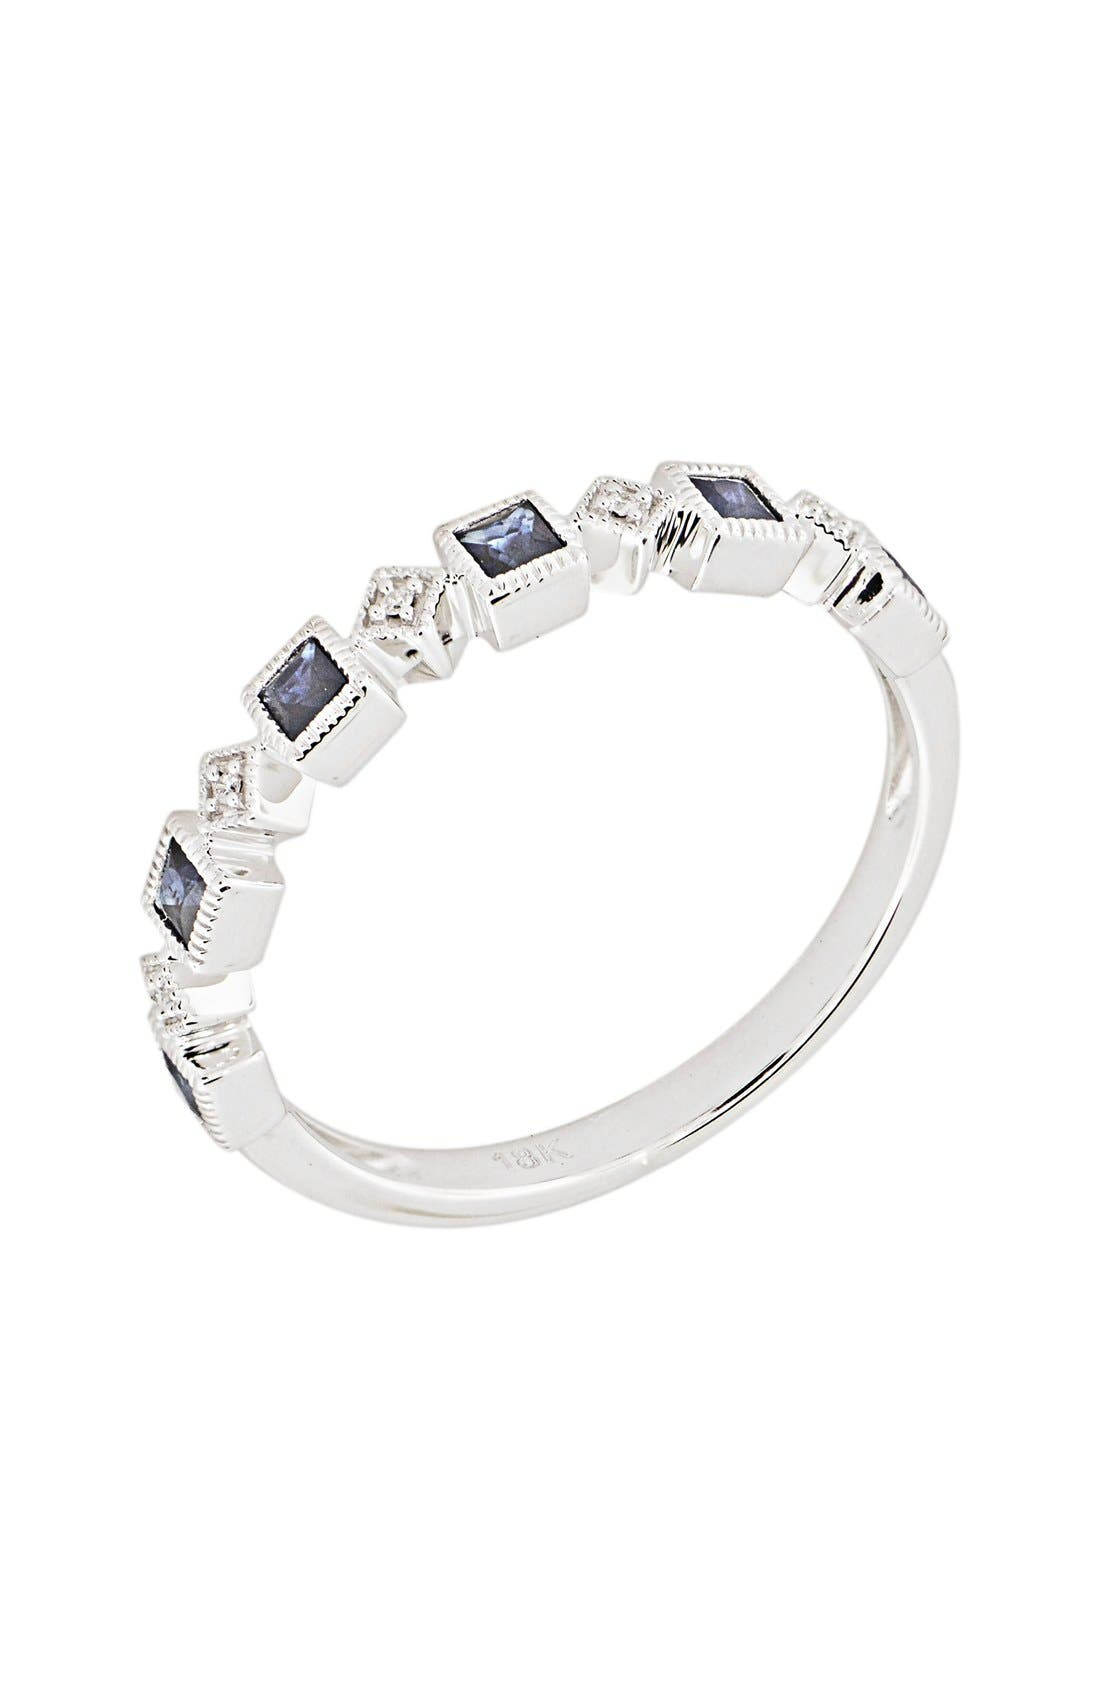 Stackable Diamond & Sapphire Band Ring,                             Main thumbnail 1, color,                             White Gold/ Blue Sapphire